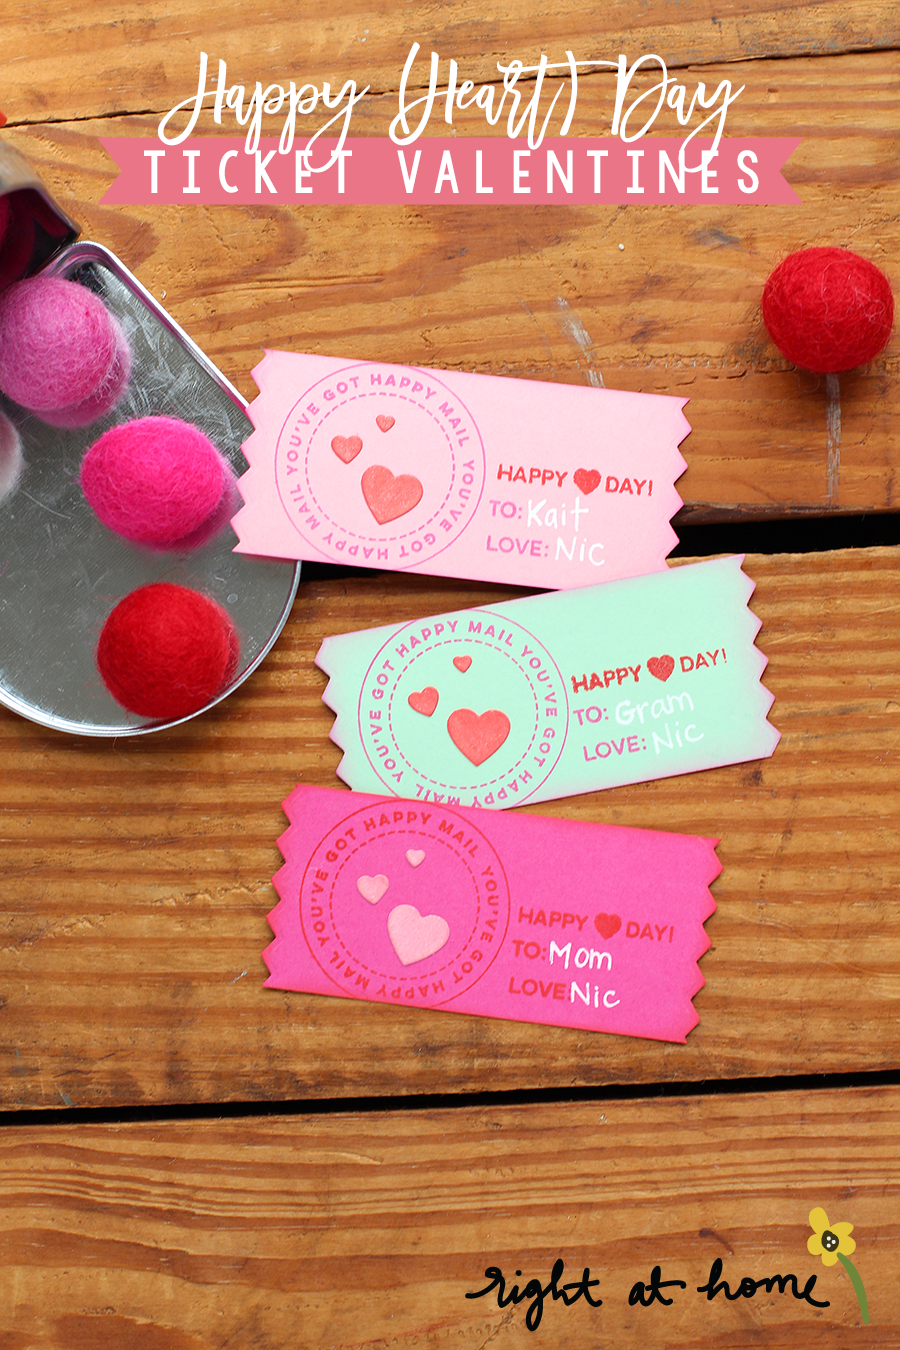 Day #7: Happy (Heart) Day Ticket Valentines // rightathomeshop.com/blog